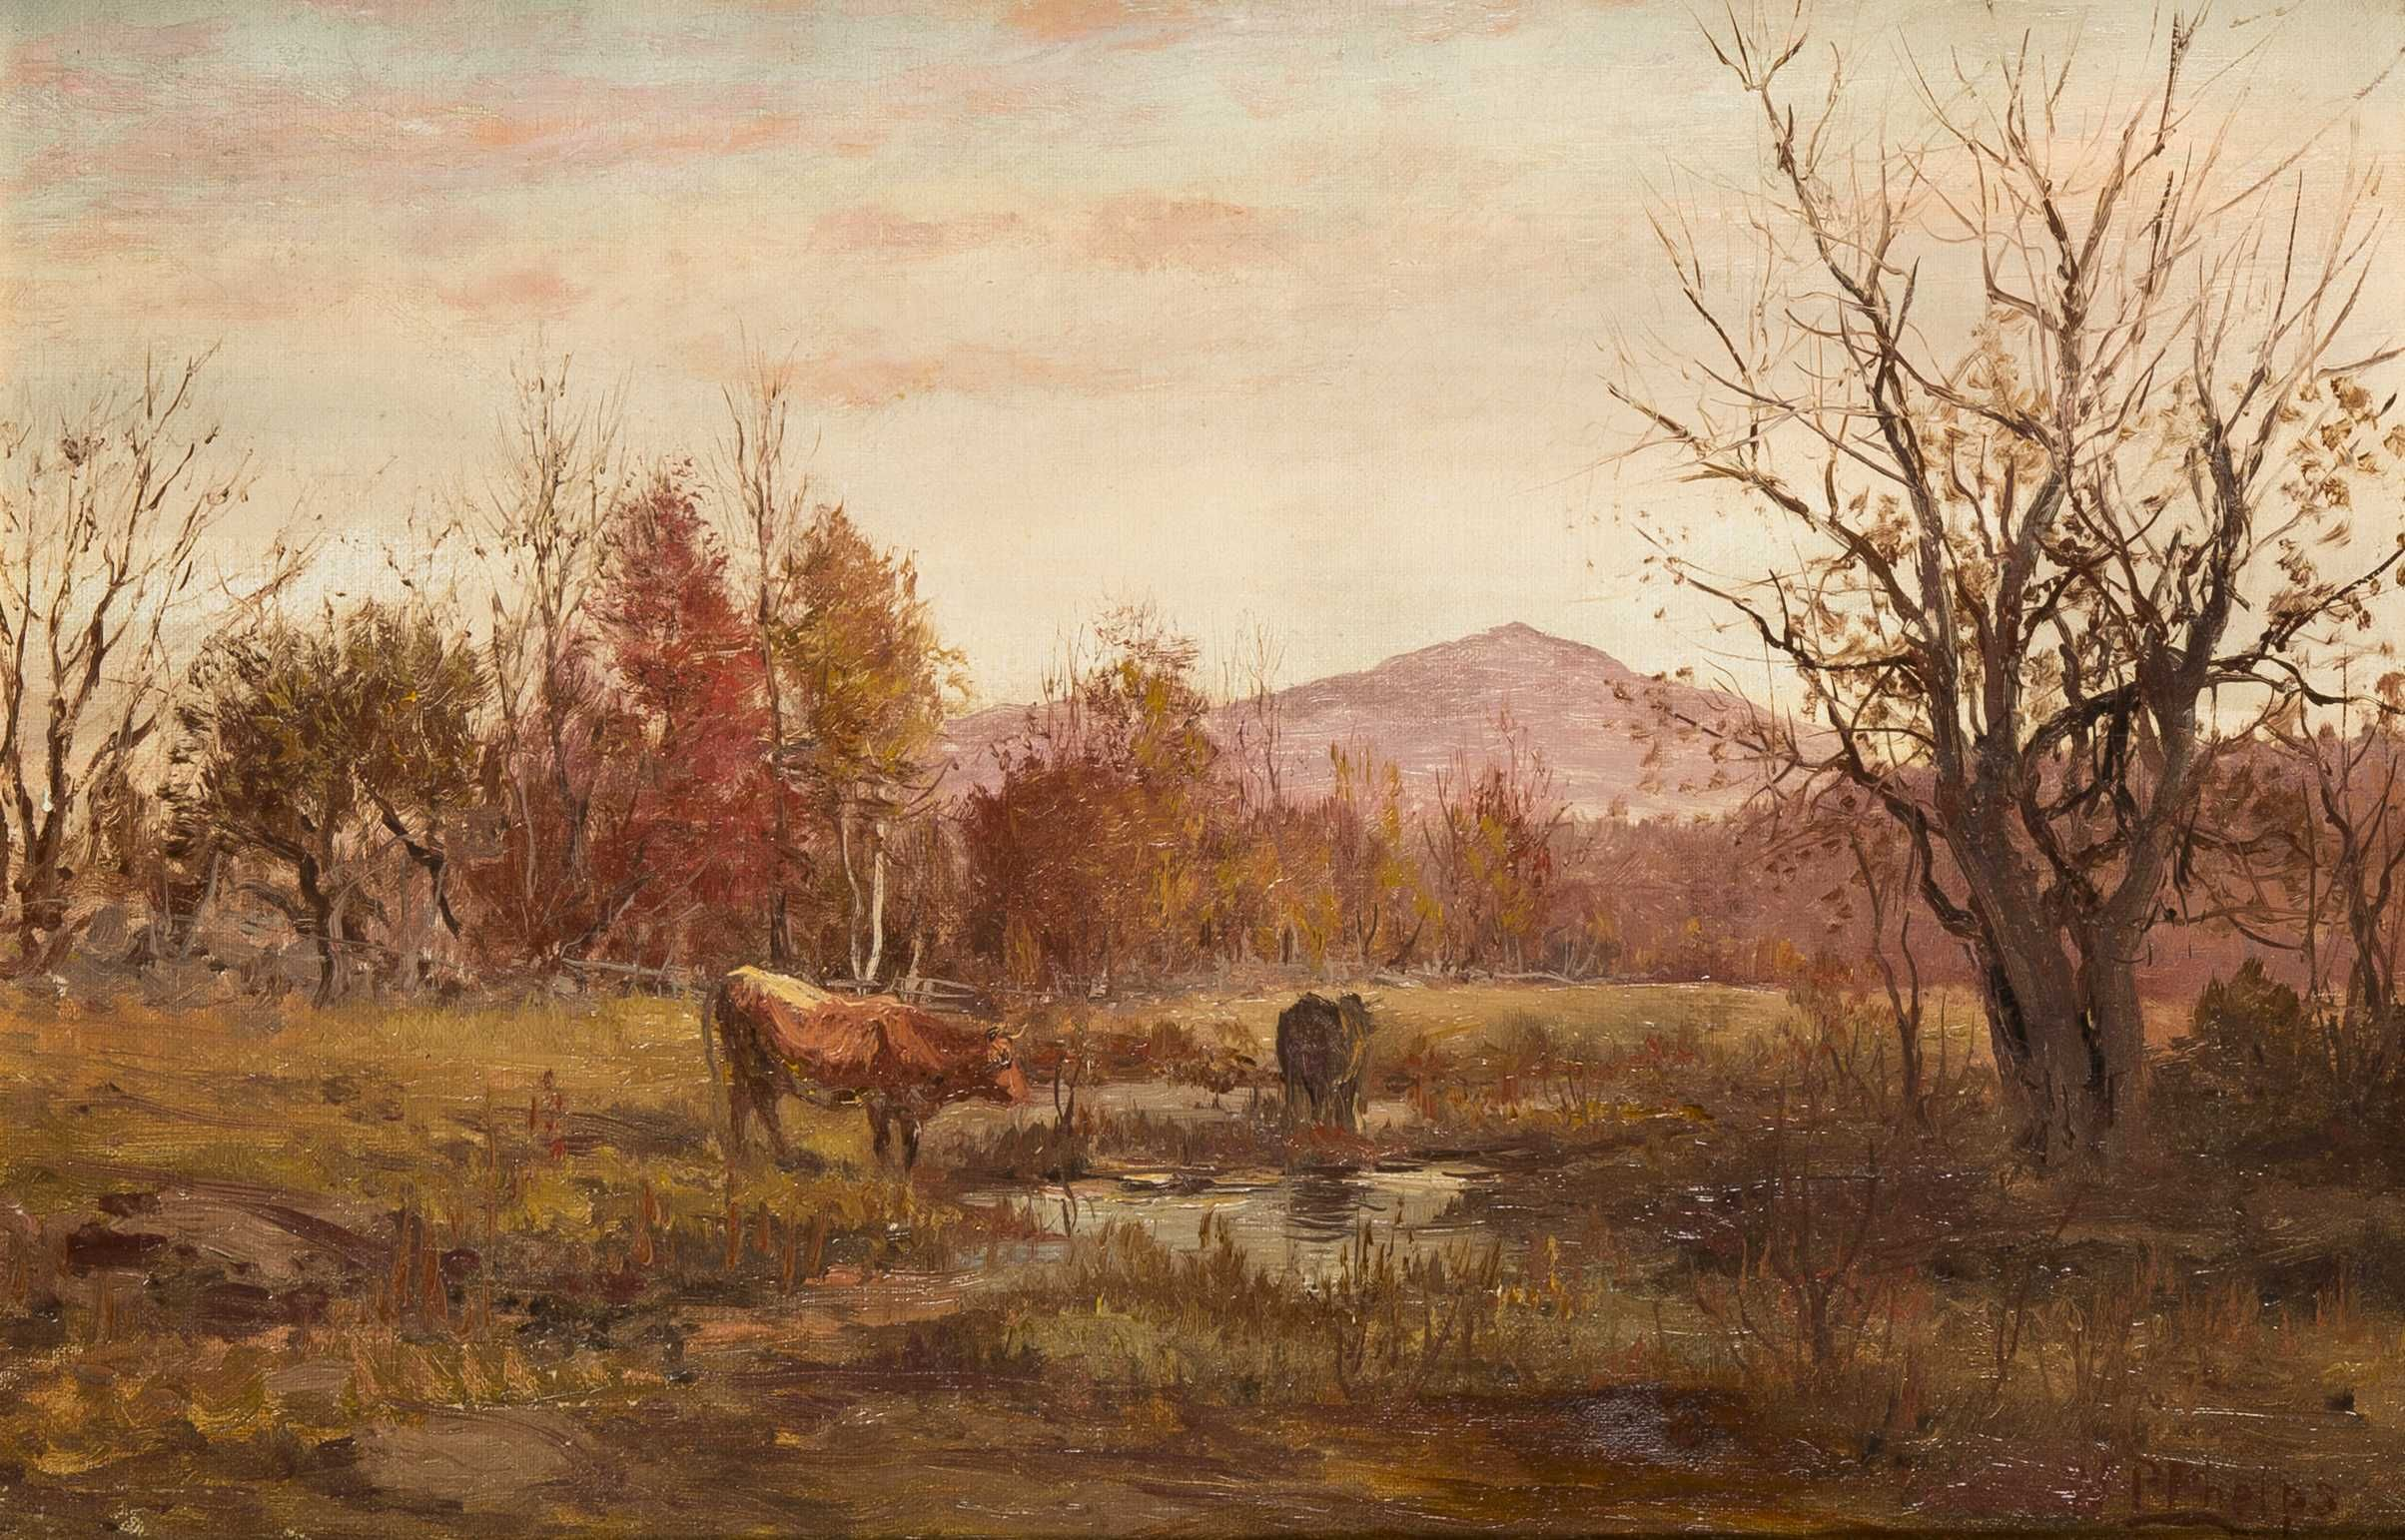 William Preston Phelps | MASTER ART painters | Pinterest | Preston ...